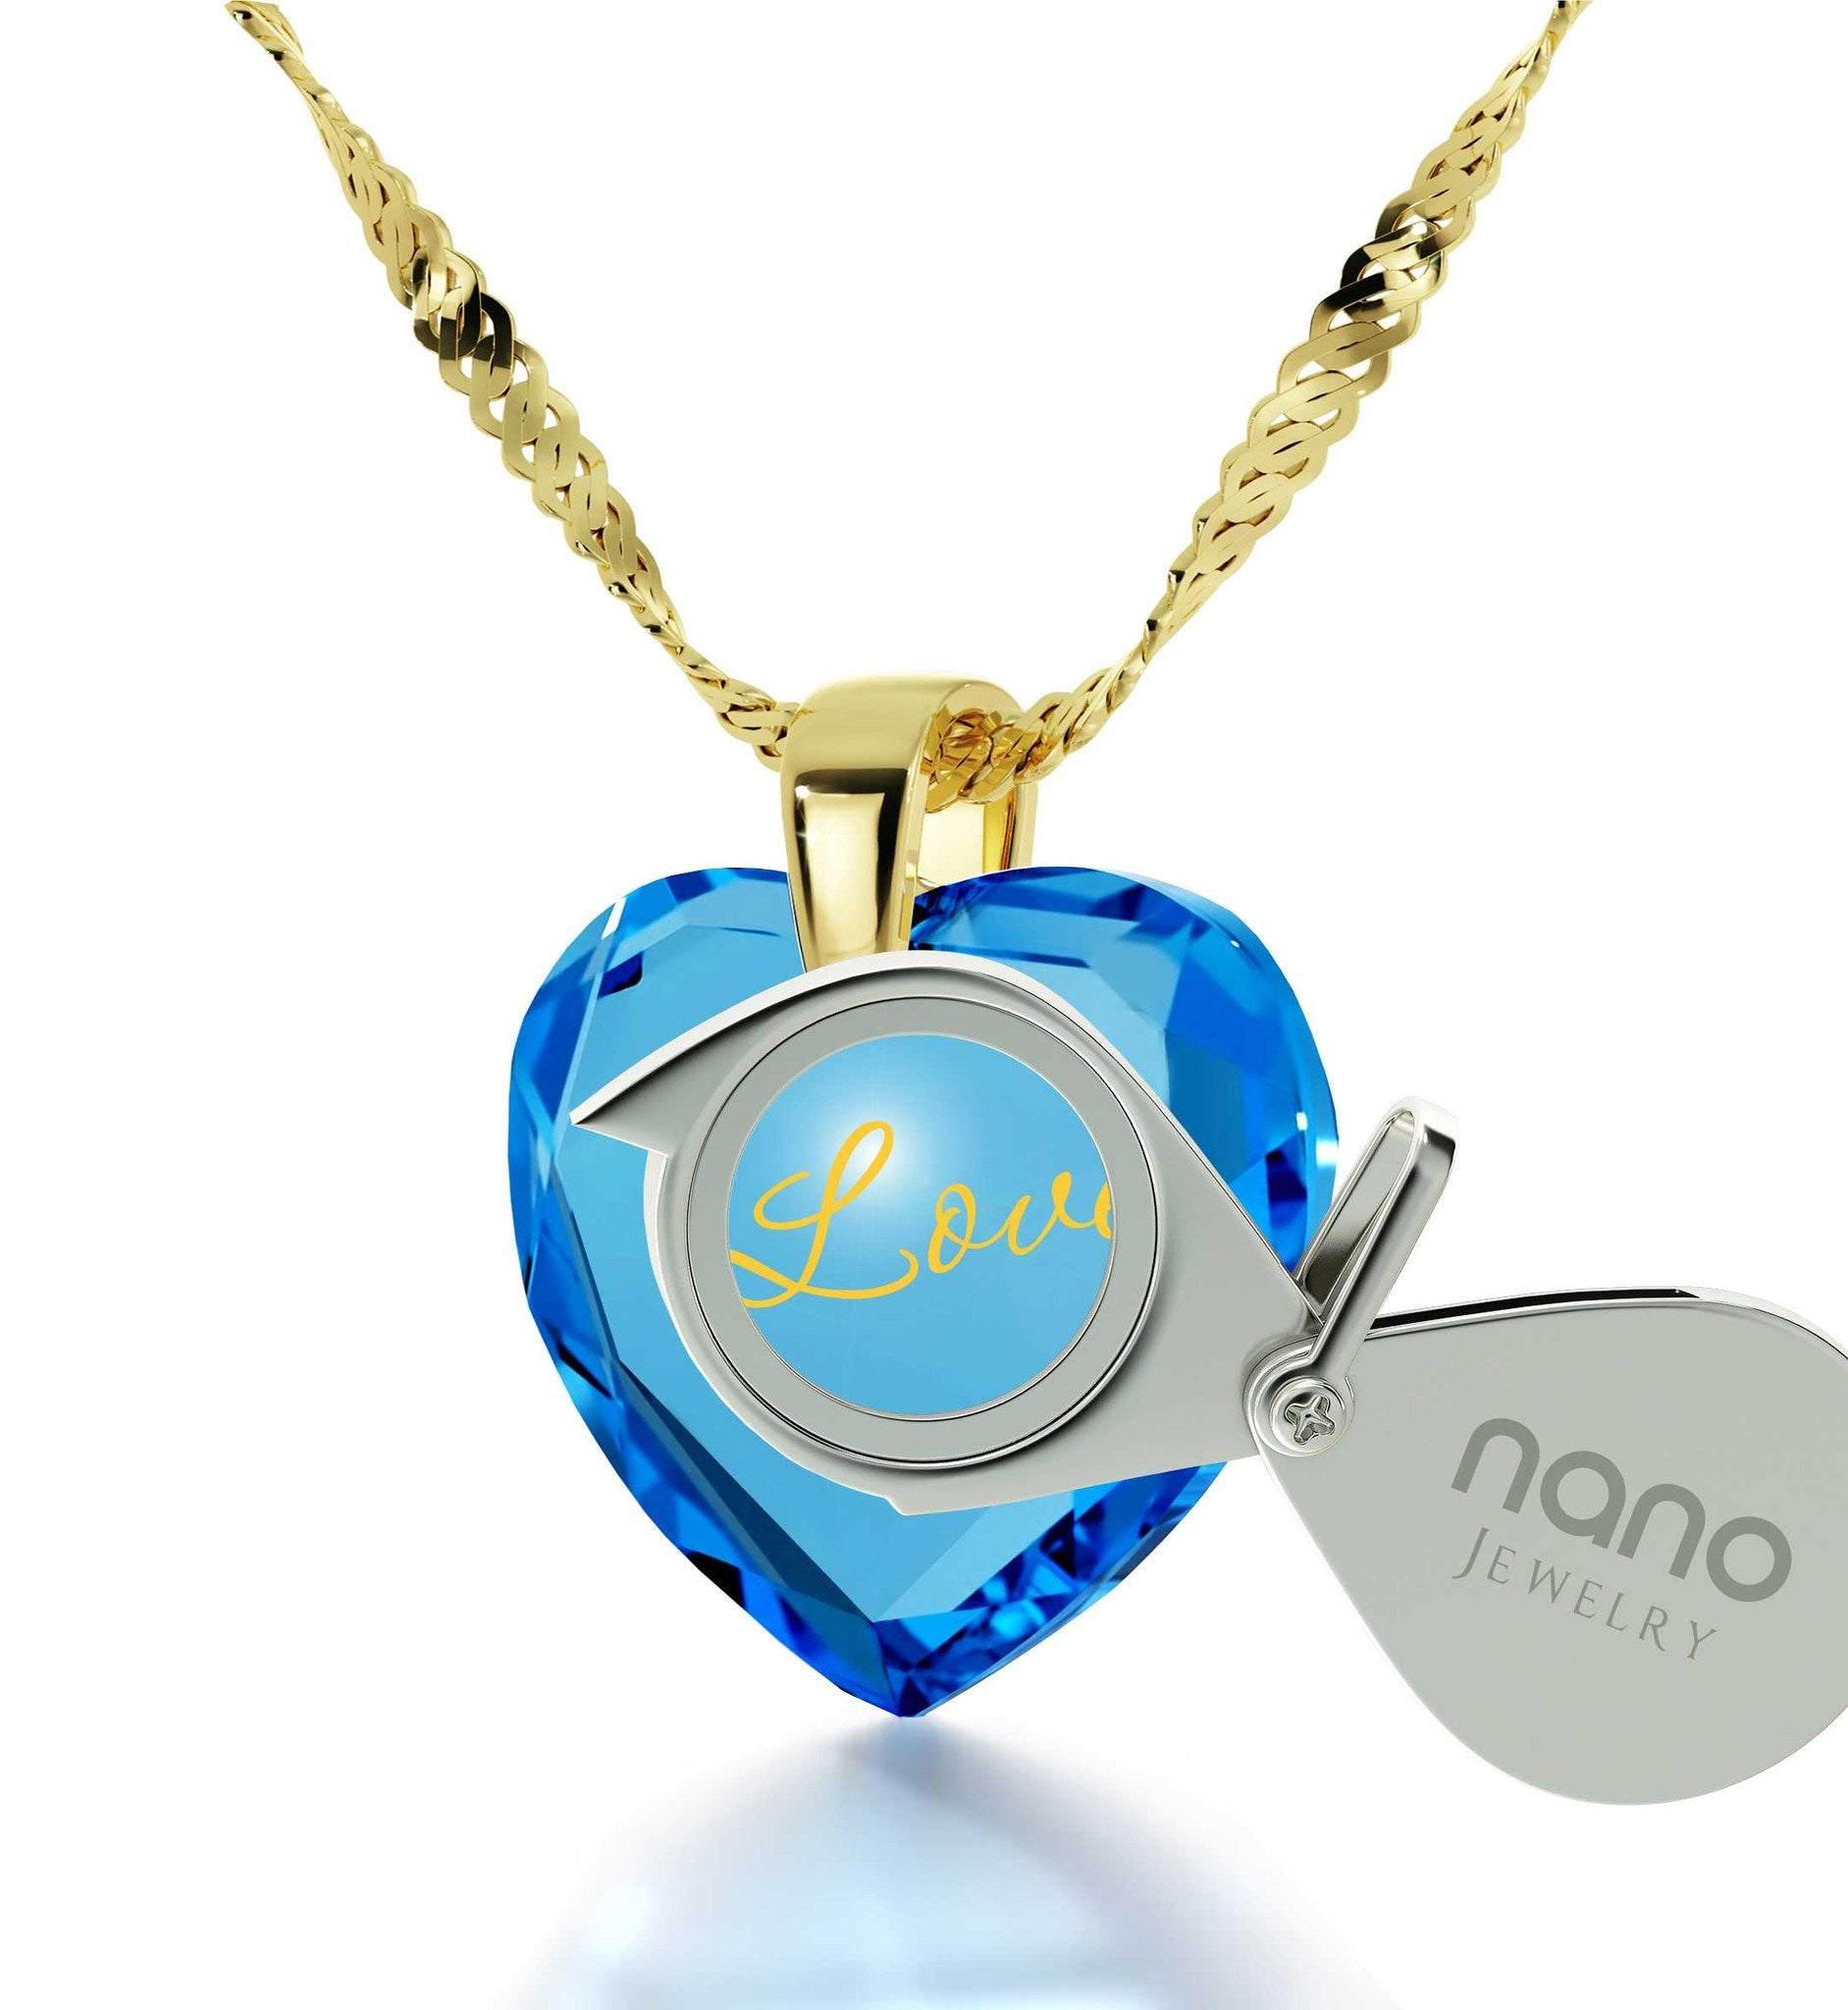 Good Valentine Gifts for Girlfriend, Meaningful Blue Heart Stone Jewelry, Christmas Present Ideas for Girls